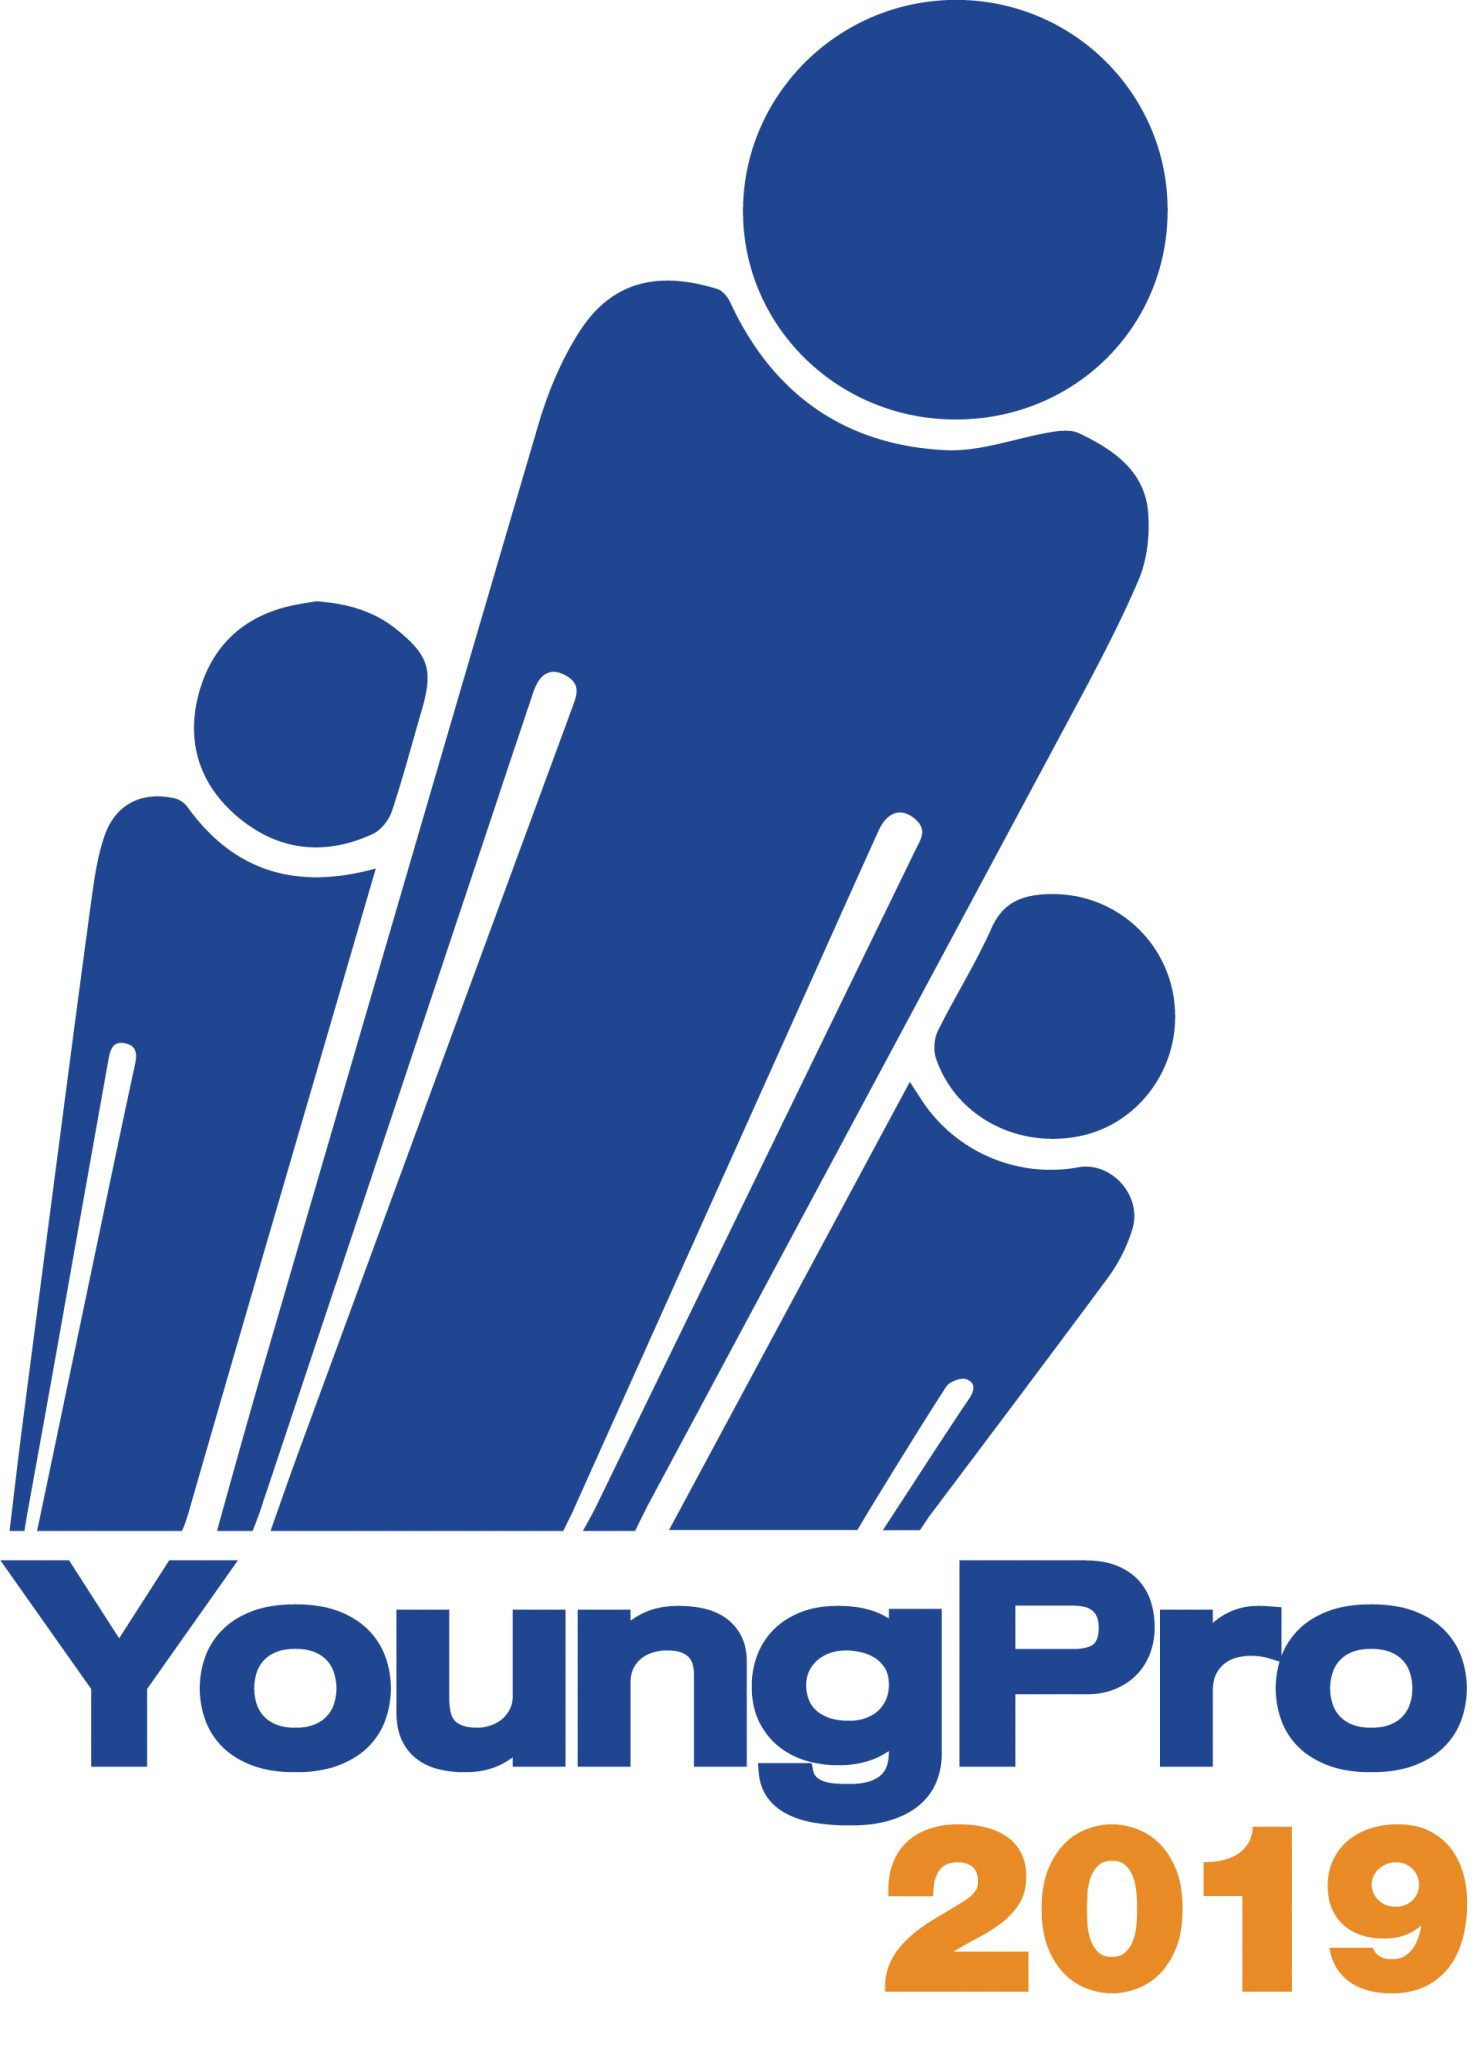 Launching YoungPro 2019